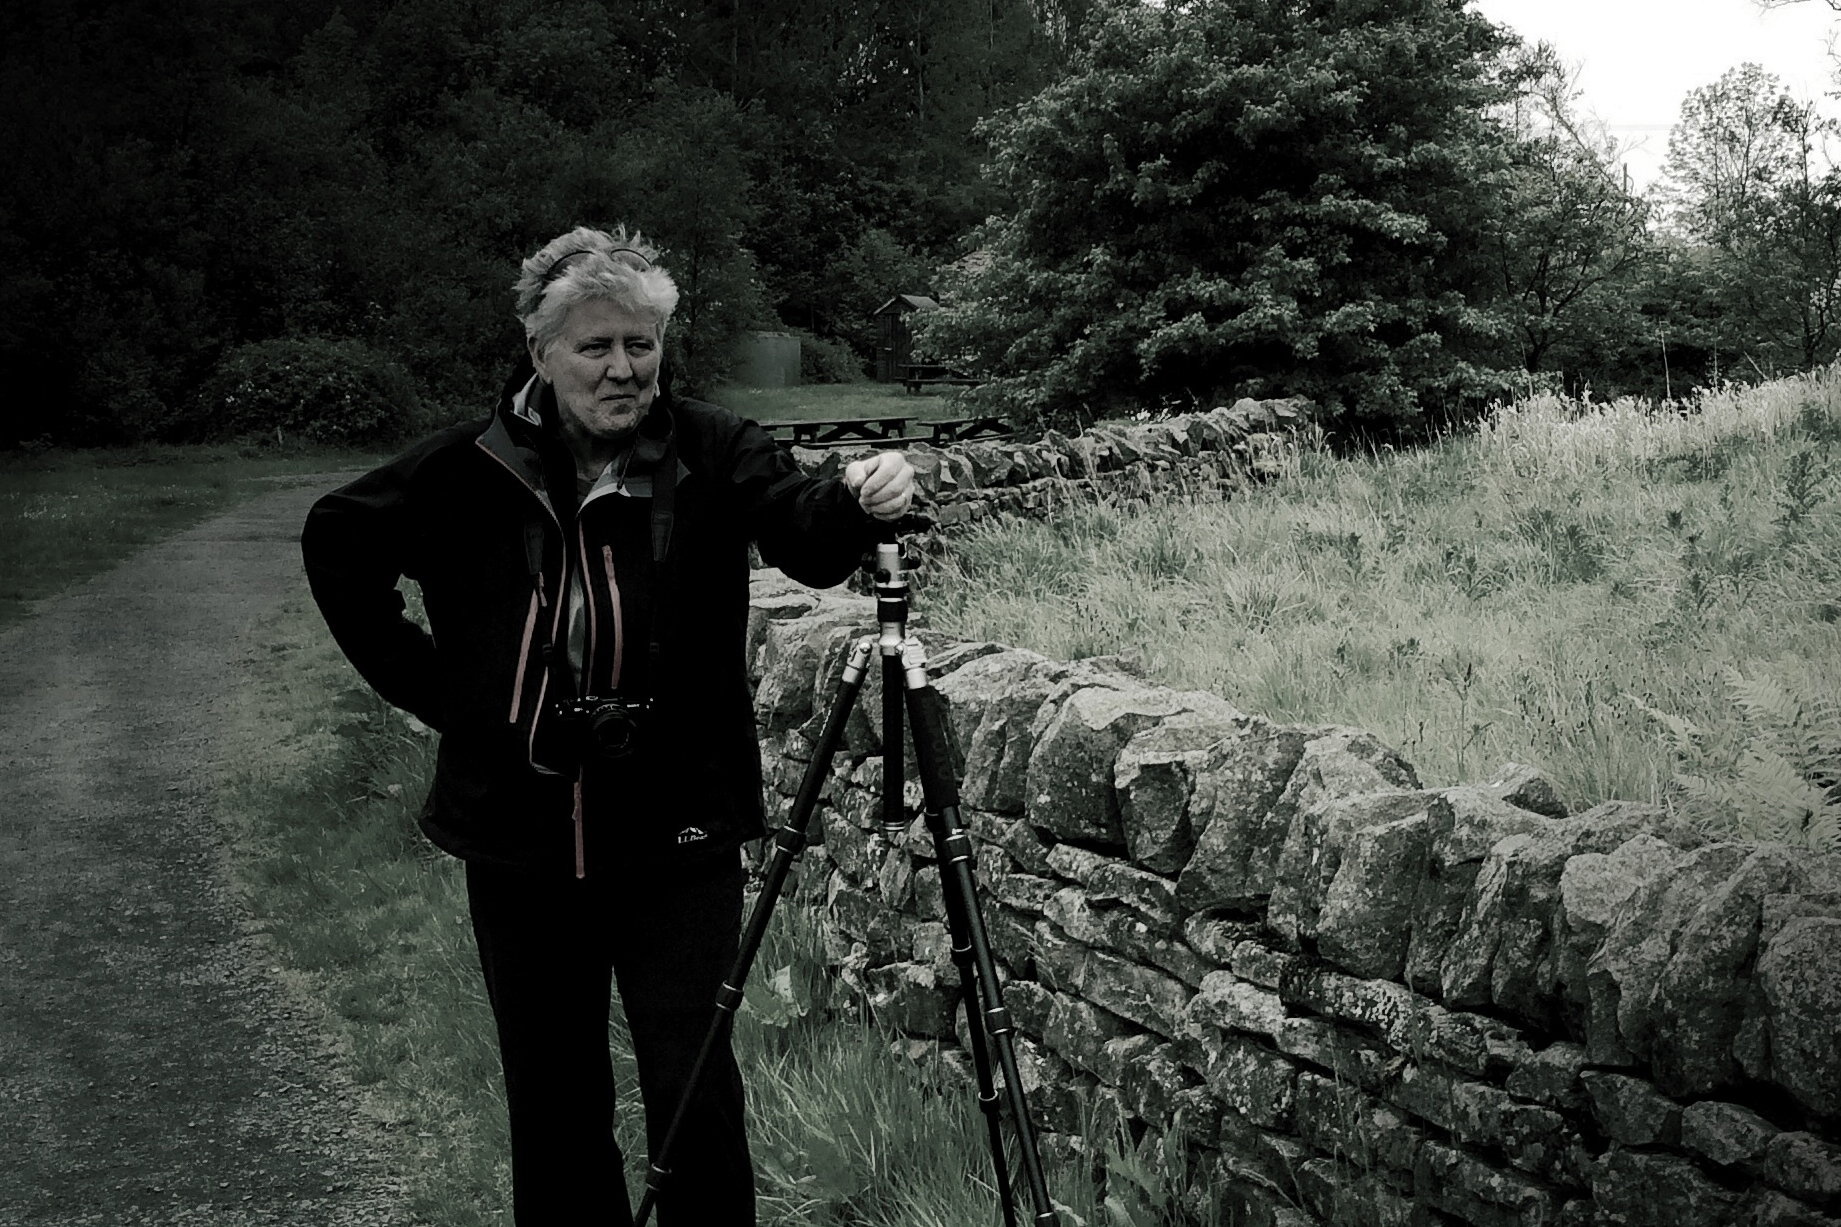 Janet Pritchard in the field in northern England, working on a project about Hadrian's Wall, which was built by the Romans as the northwest frontier of their empire. (Judith Thorpe Photo)